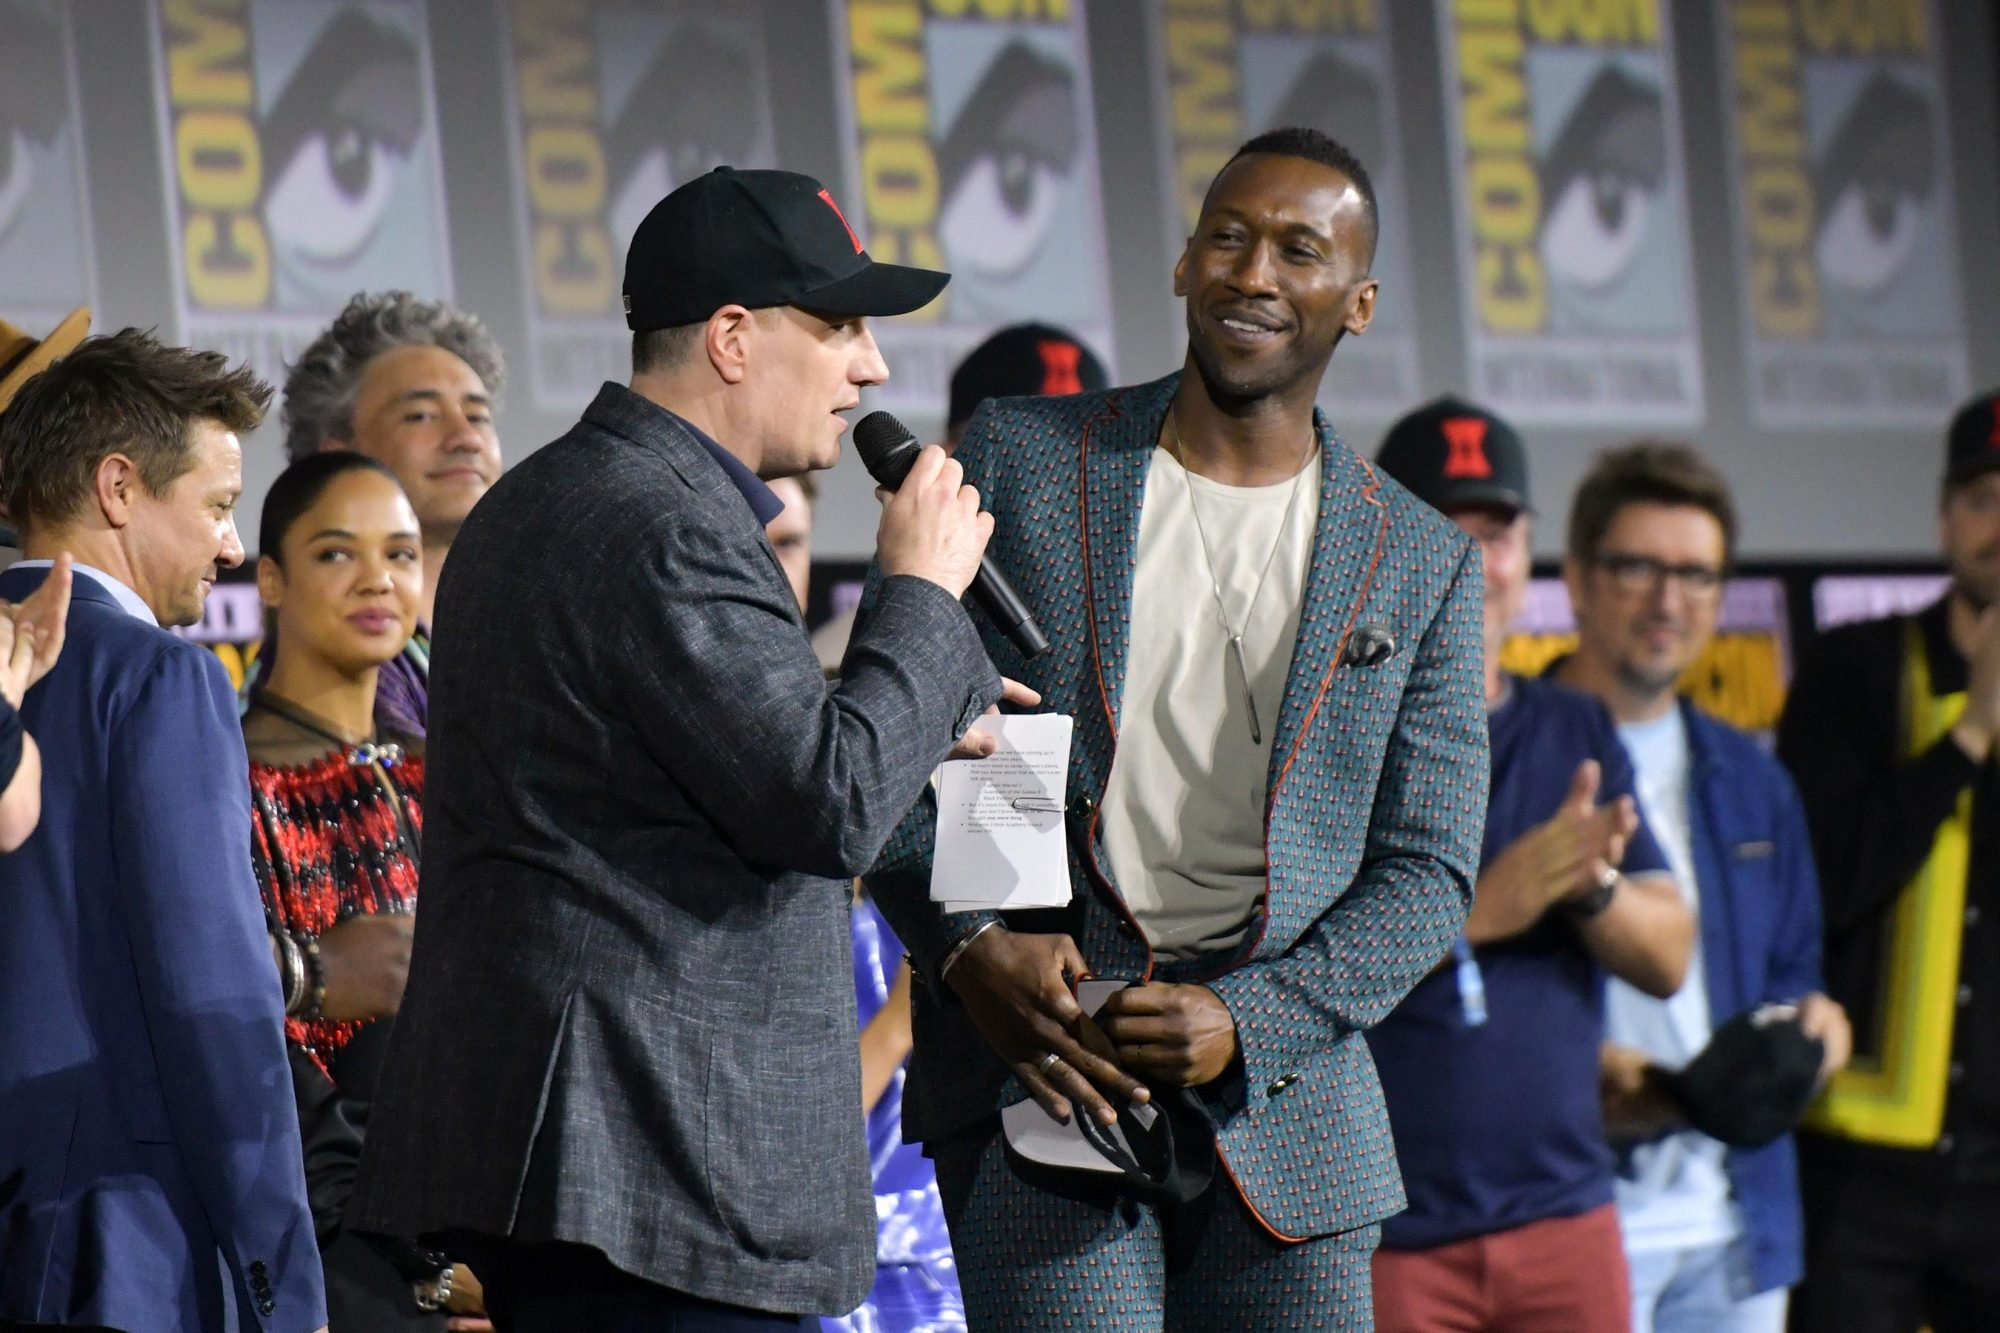 Kevin Feige and Mahershala Ali